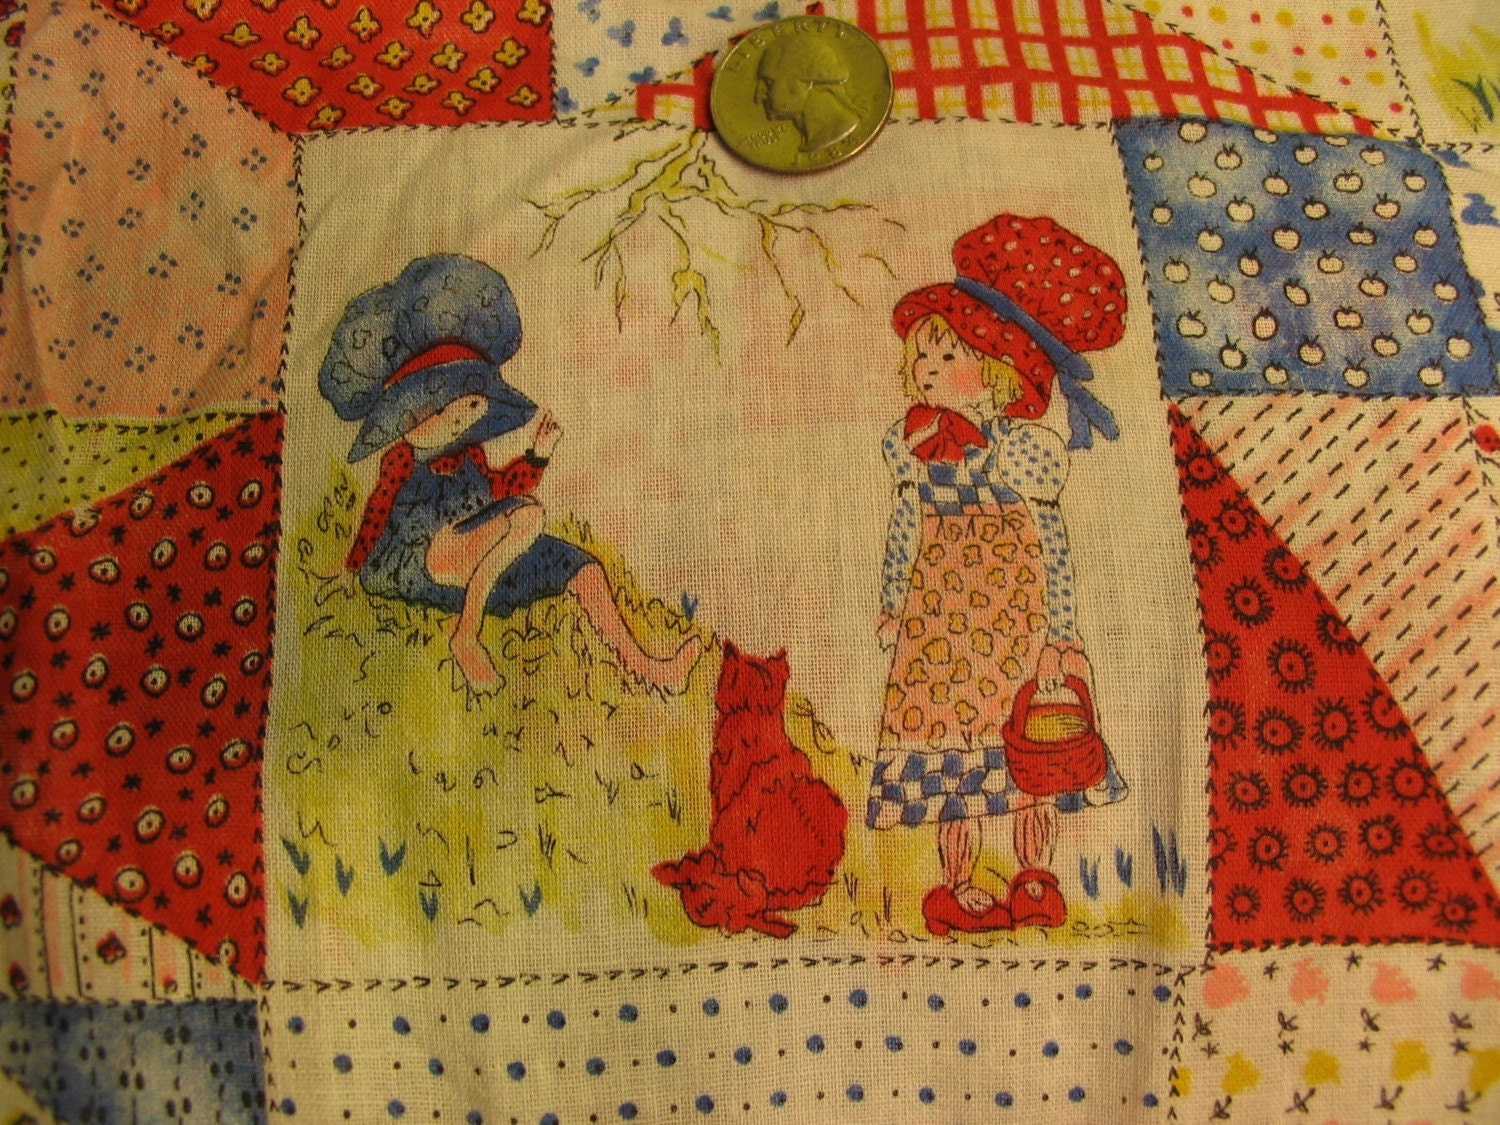 Crazy Quilt Pattern Fabric : Vintage 1970s Holly Hobbie Fabric Crazy Quilt Pattern Half